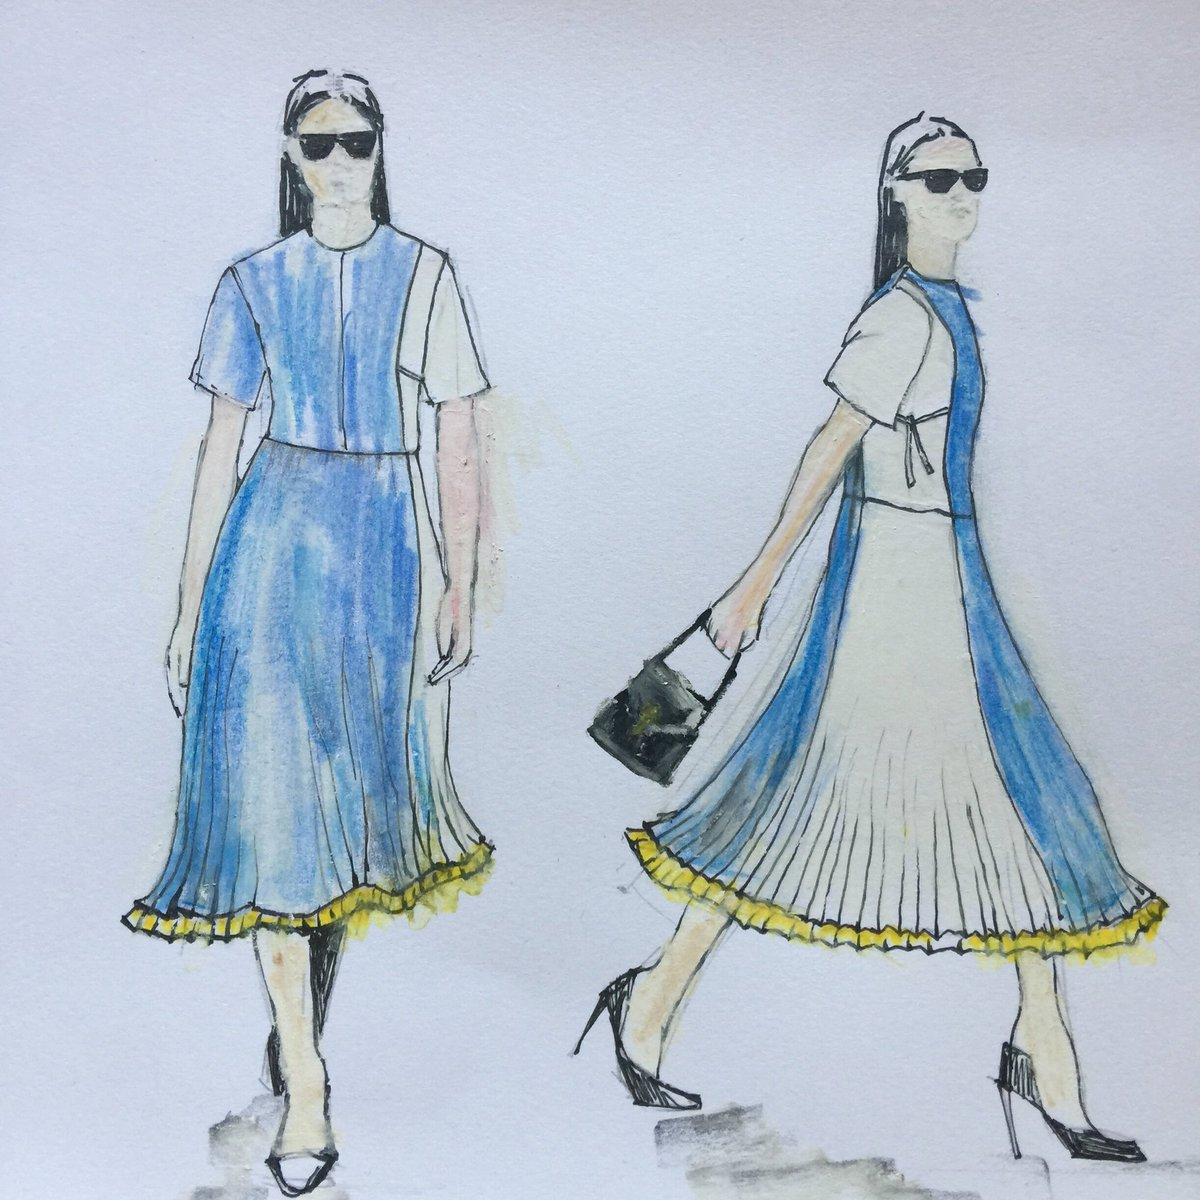 It started with a sketch! Wedding guest dress inspiration is best left to the fashionistas but for wedding venue inspiration, visit our Open Day on Sunday 7th October 11-3.30 @Loseleyevents #wedding #weddinginspiration #dreamwedding #gettingmarried #weddingplanning #dressinspo